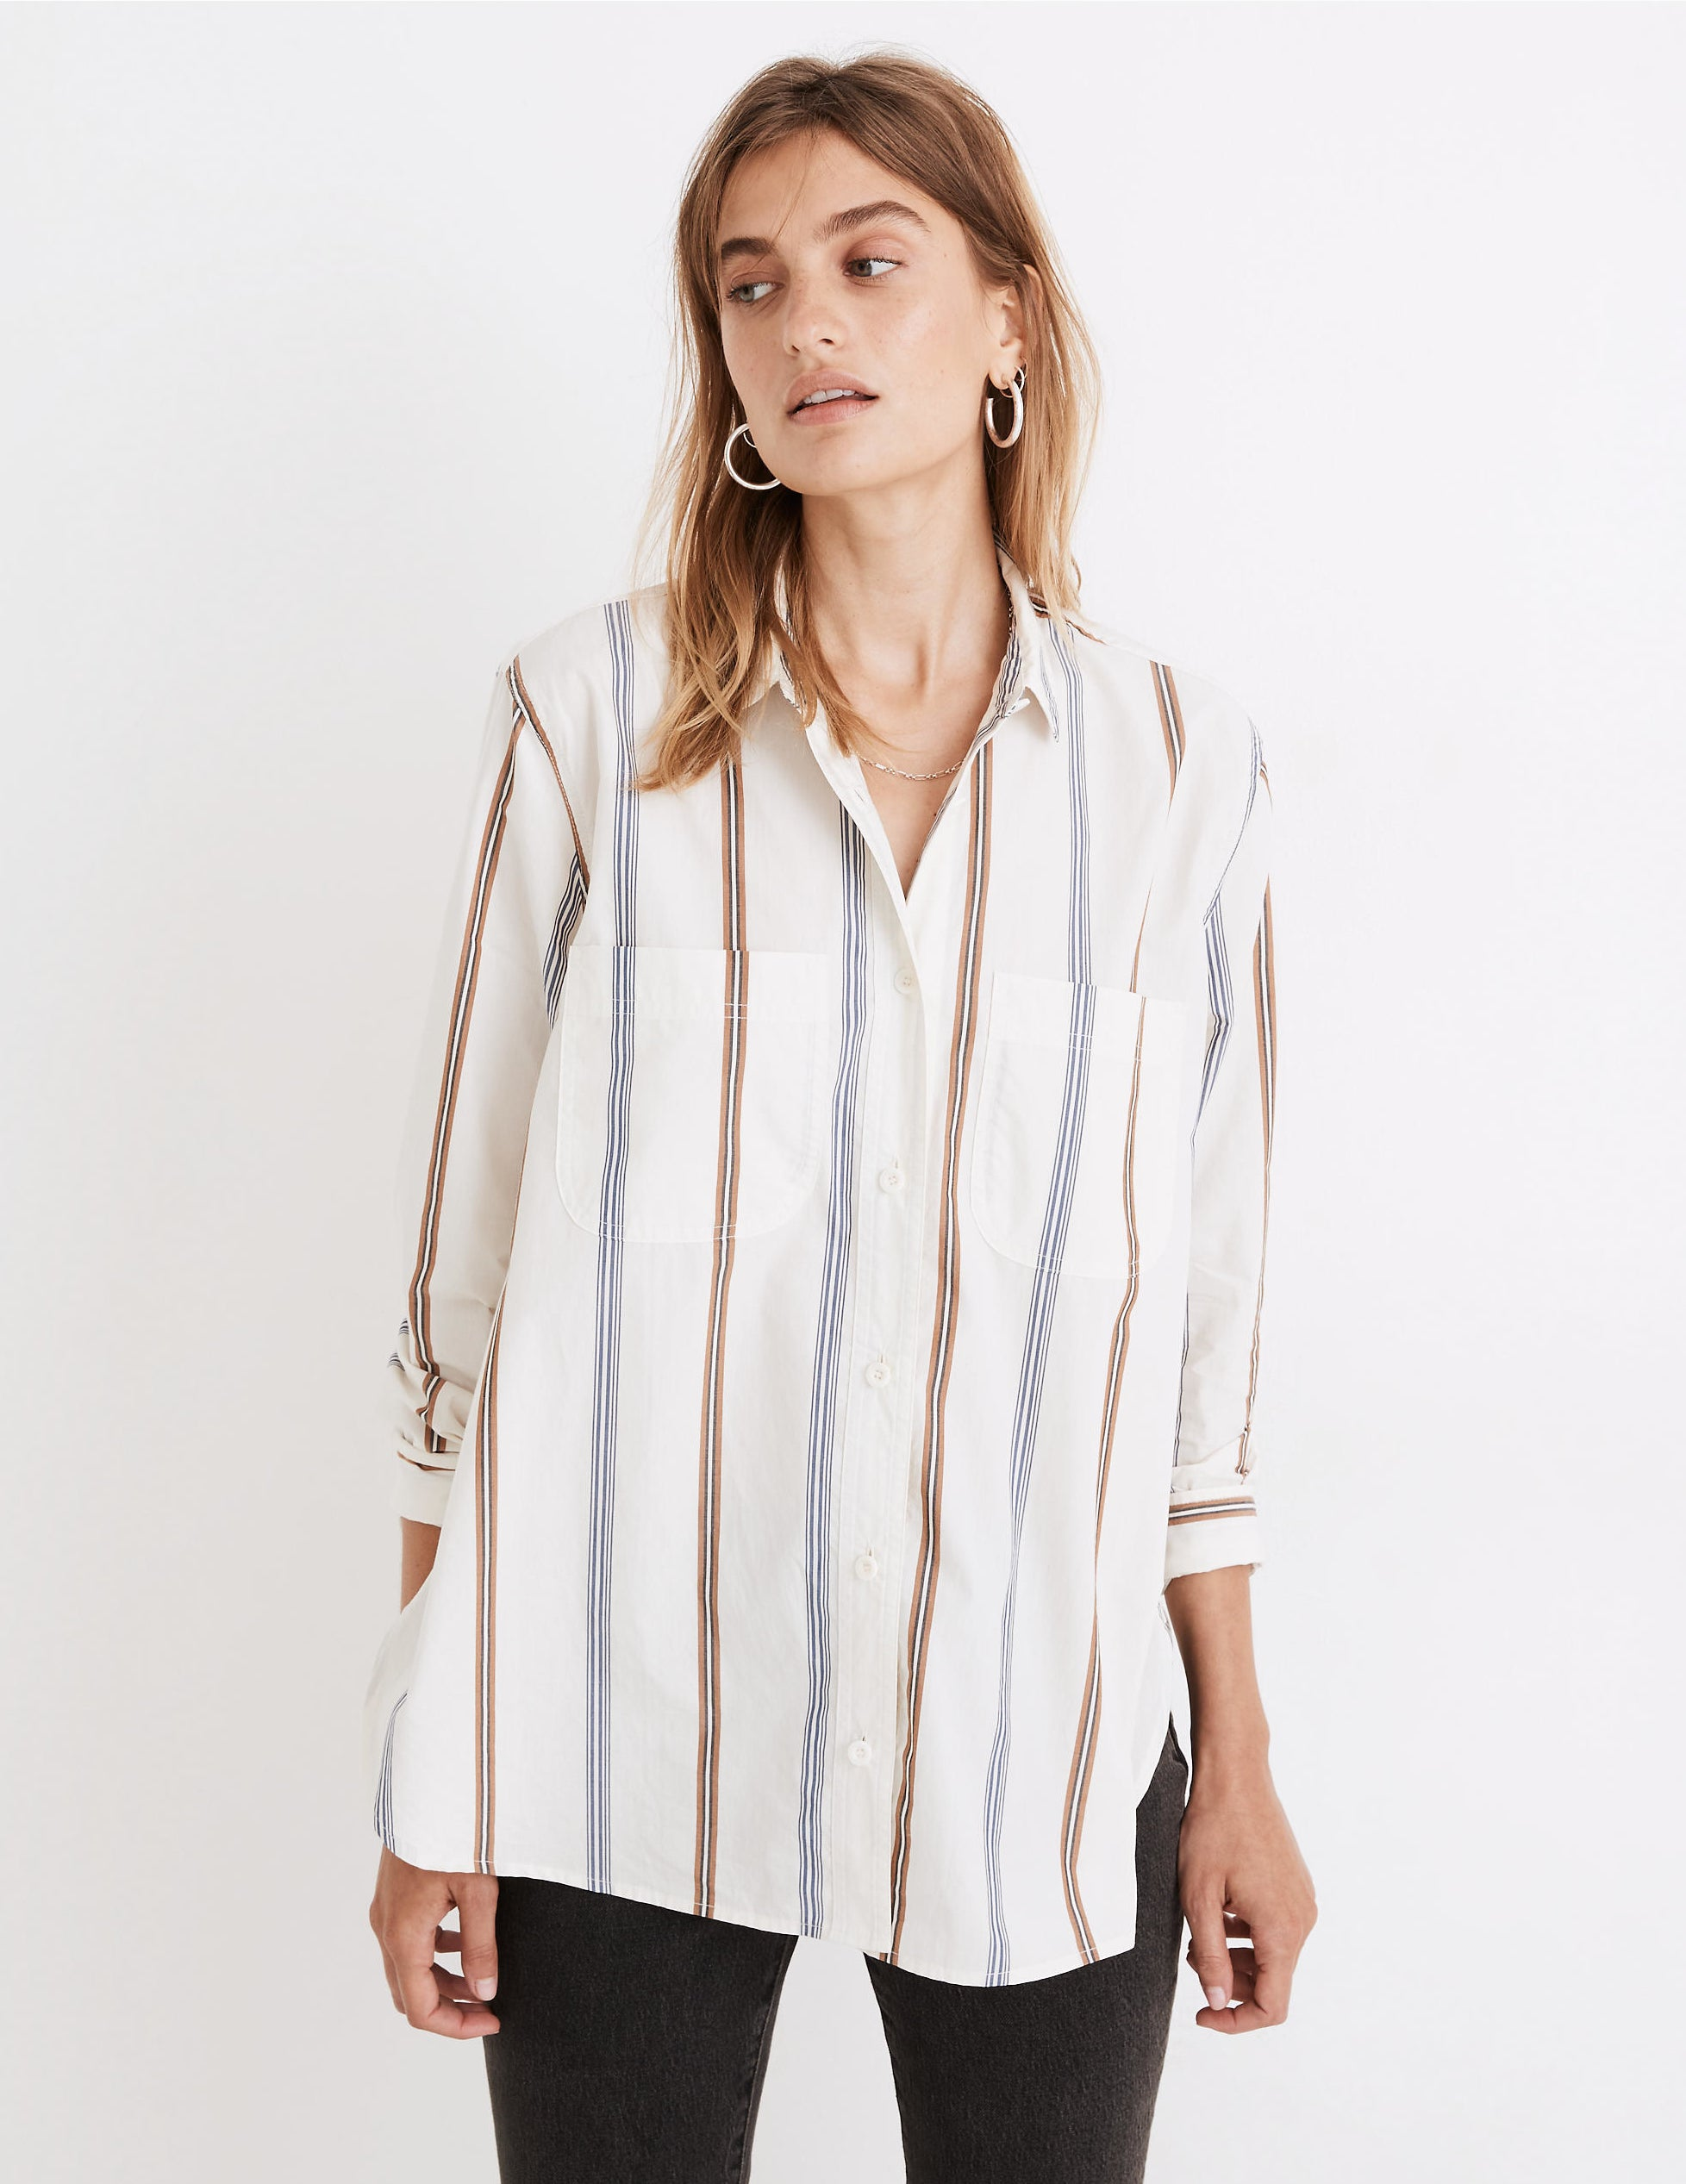 model wearing striped shirt with black pants